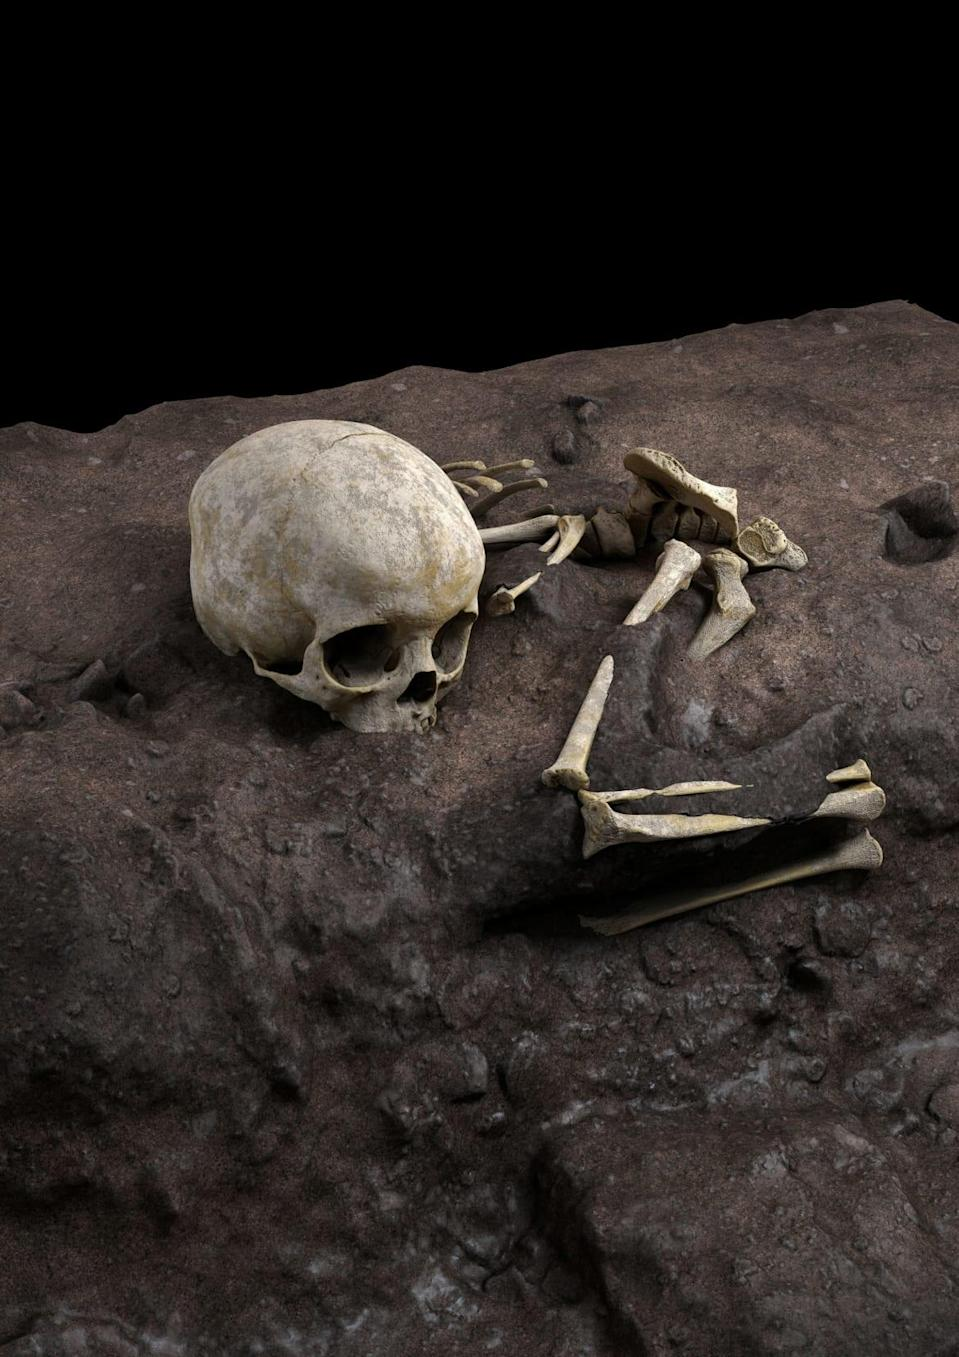 """<div class=""""inline-image__title"""">SCIENCE-BURIAL/</div> <div class=""""inline-image__caption""""><p>The remains of a child roughly age 3 who lived about 78,000 years ago and was found in a burial pit at a cave site in Kenya called Panga ya Saidi, the oldest-known human burial in Africa, are seen in an undated virtual reconstruction.</p></div> <div class=""""inline-image__credit"""">JORGE GONZALEZ/ELENA SANTOS</div>"""